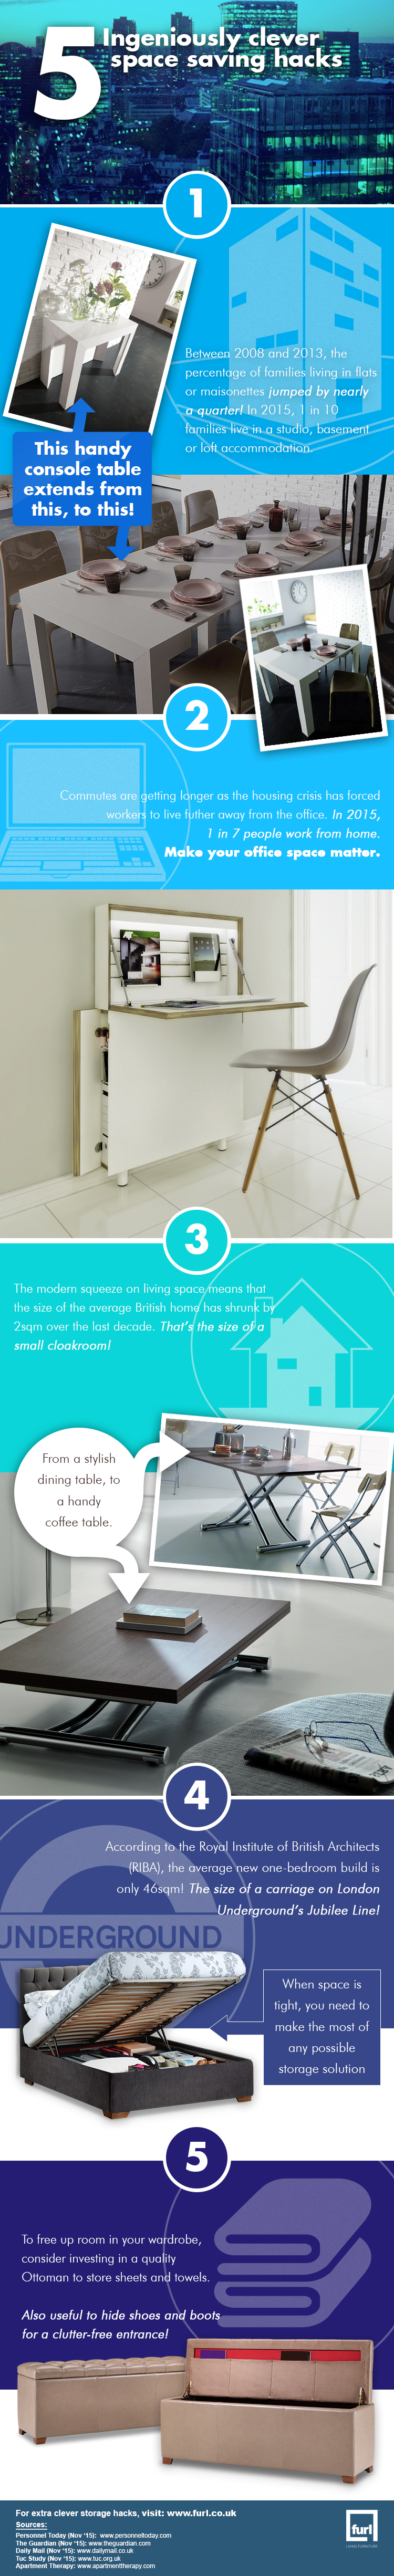 Try These 5 Cool Space Saving Hacks [Infographic]